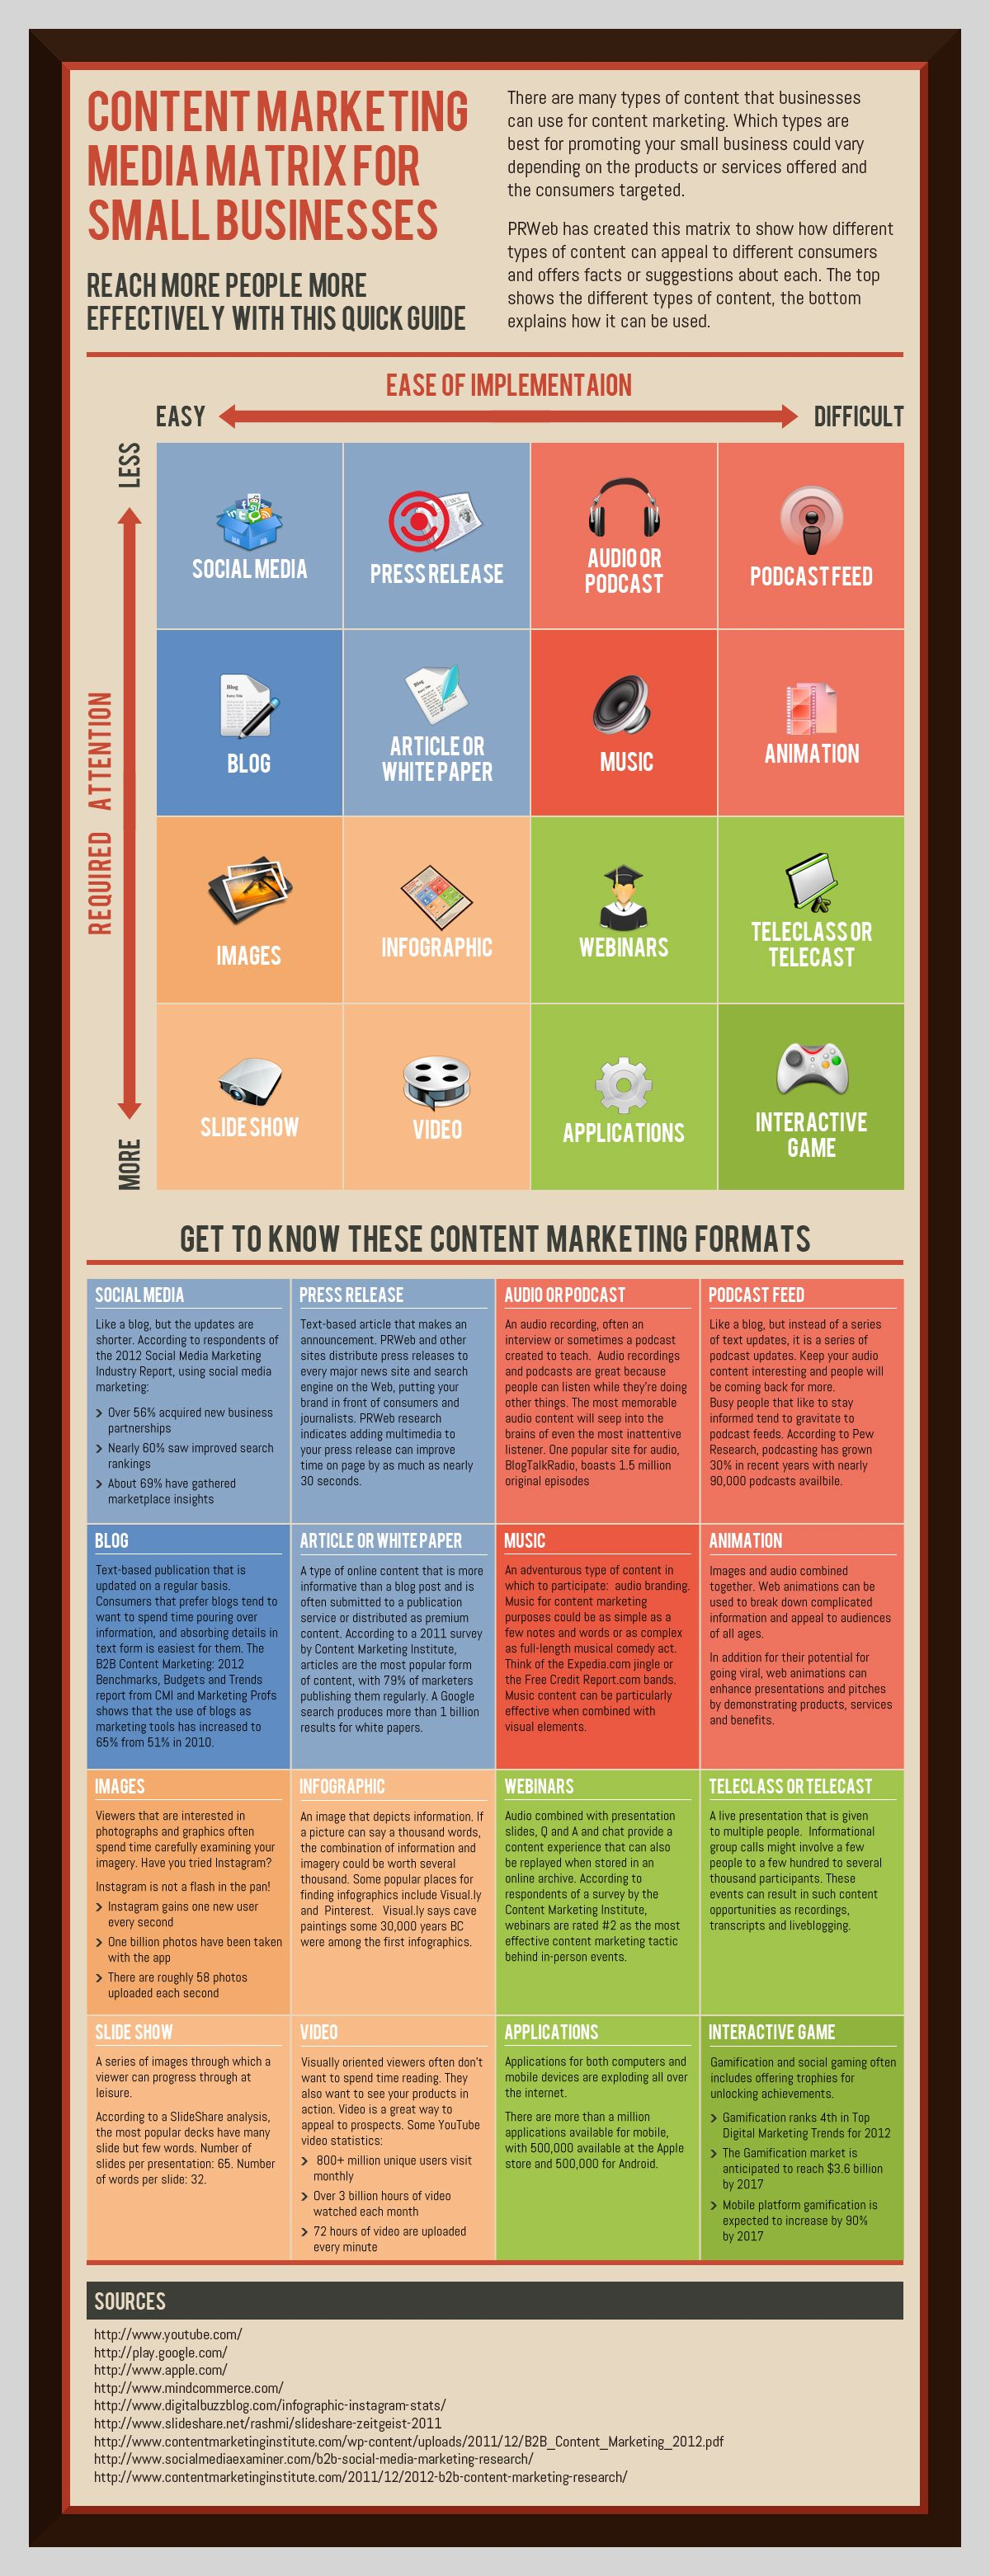 The content marketing media matrix for small businesses: click the link below for an accessible version.